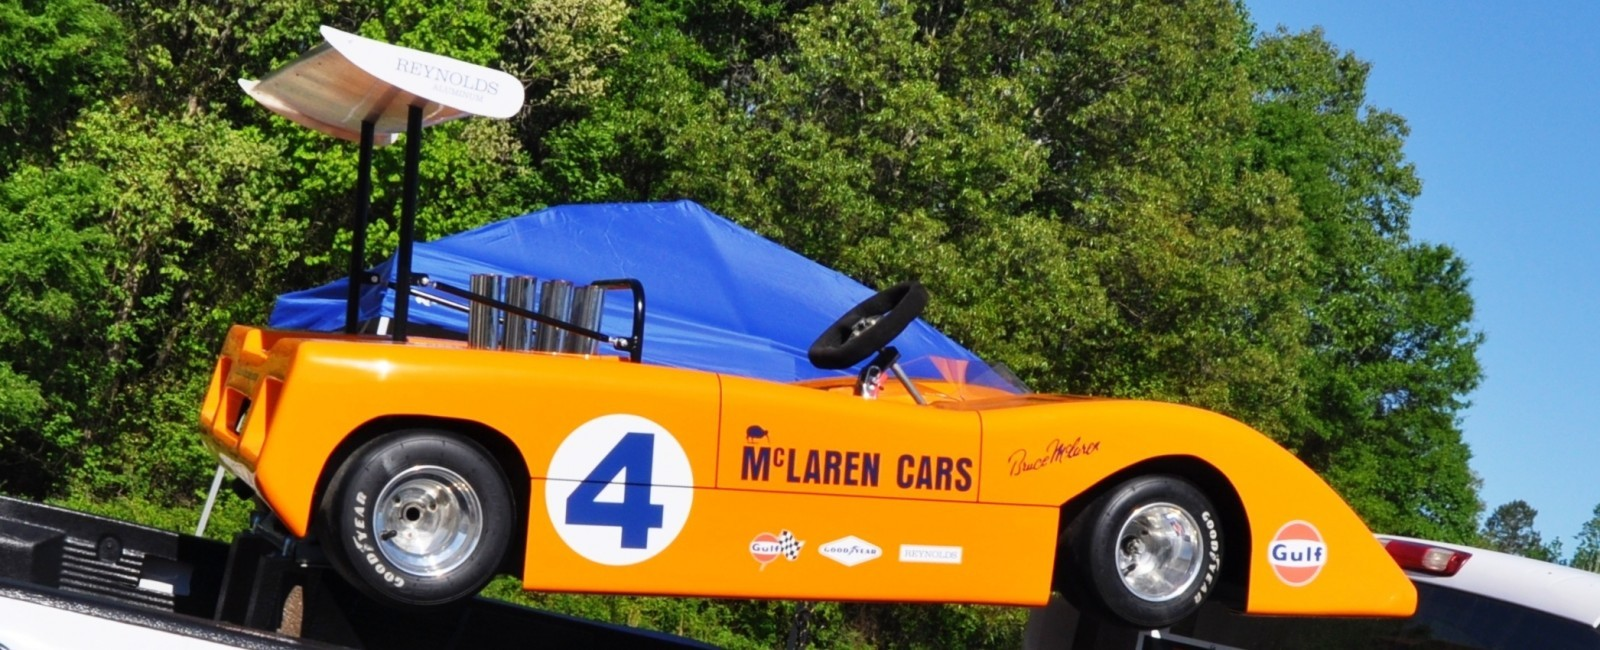 McLaren M8B Go-Kart Seeking Posh New Home, McLaren Owner Strongly Preferred 4